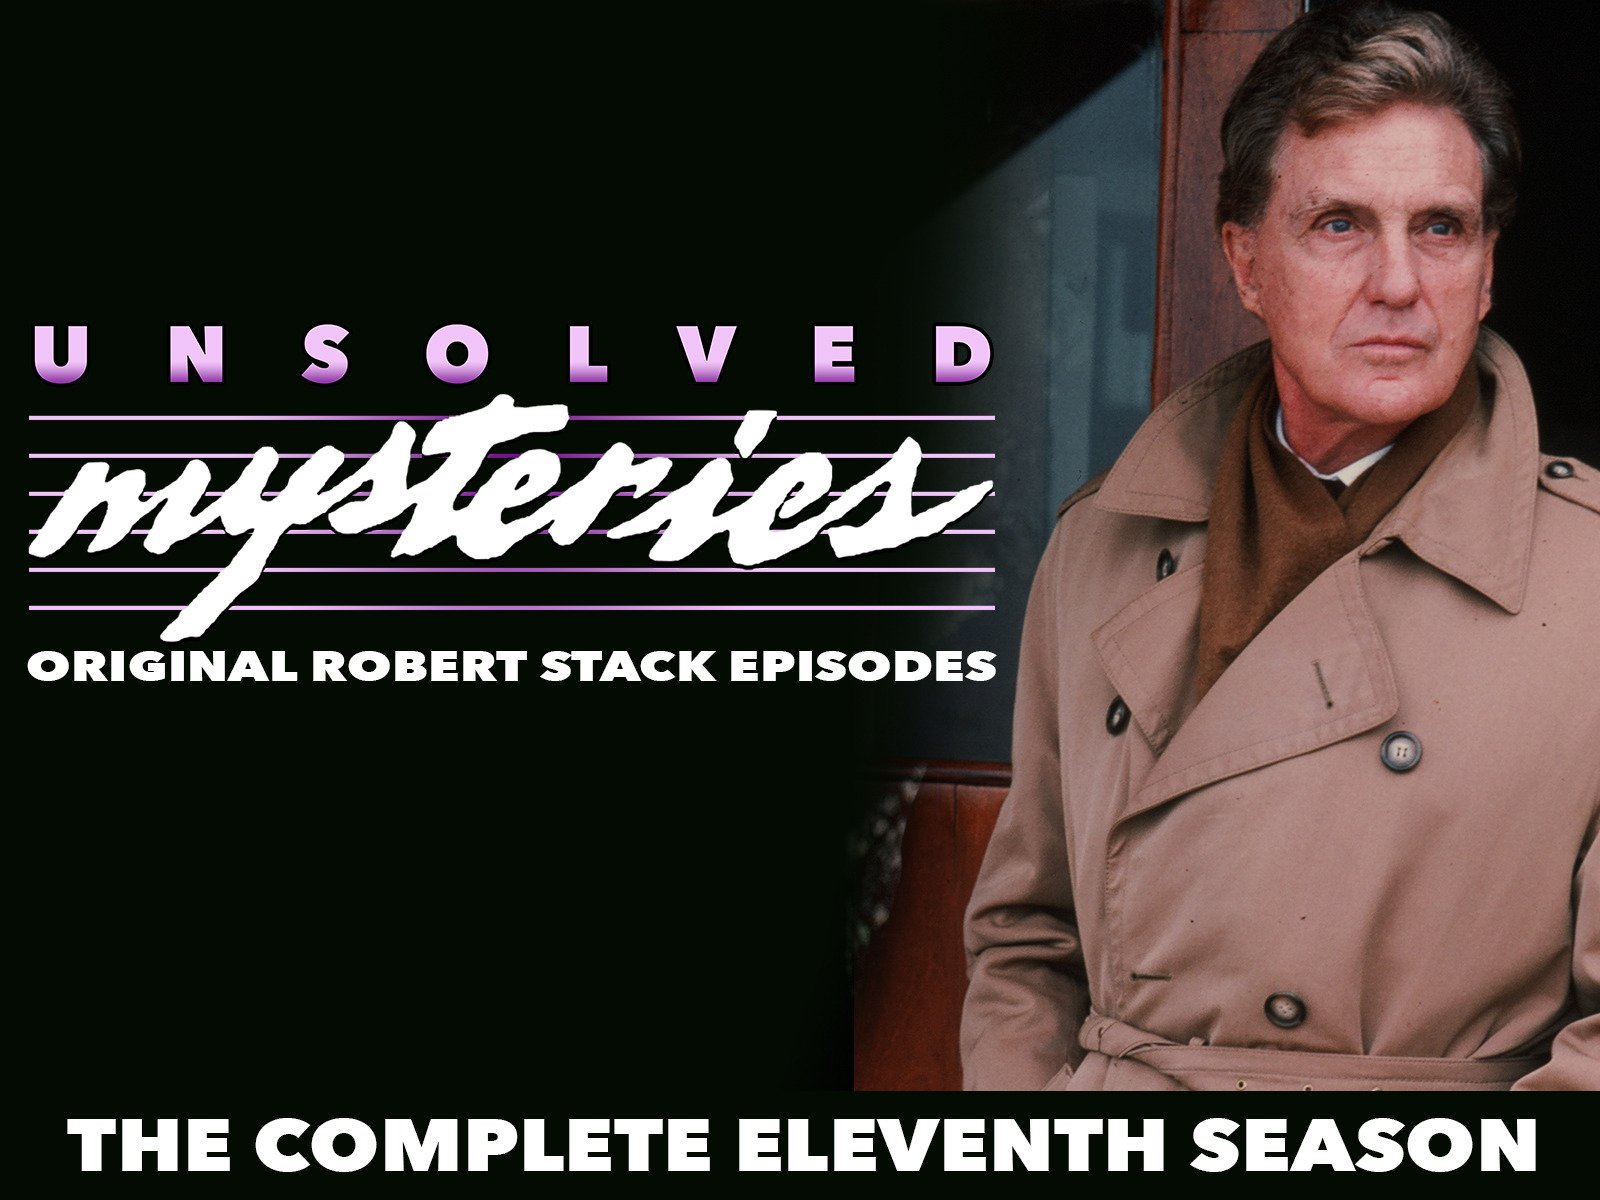 Unsolved Mysteries: Original Robert Stack Episodes - Season 11